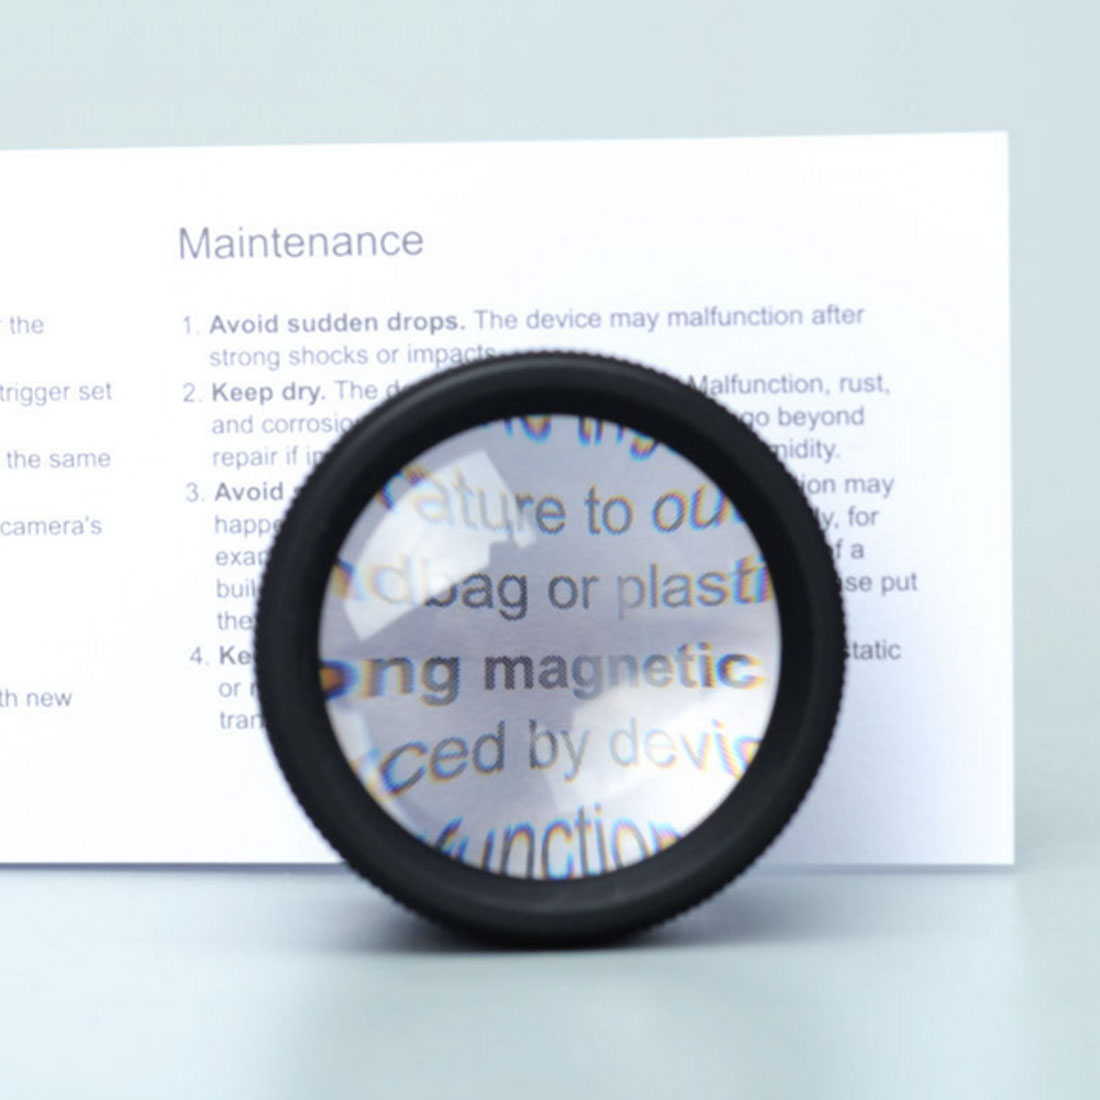 New 30x36mm Jeweler Optics Loupes Magnifier Glass Magnifying Lens Microscope For Coins Stamps Jewelry